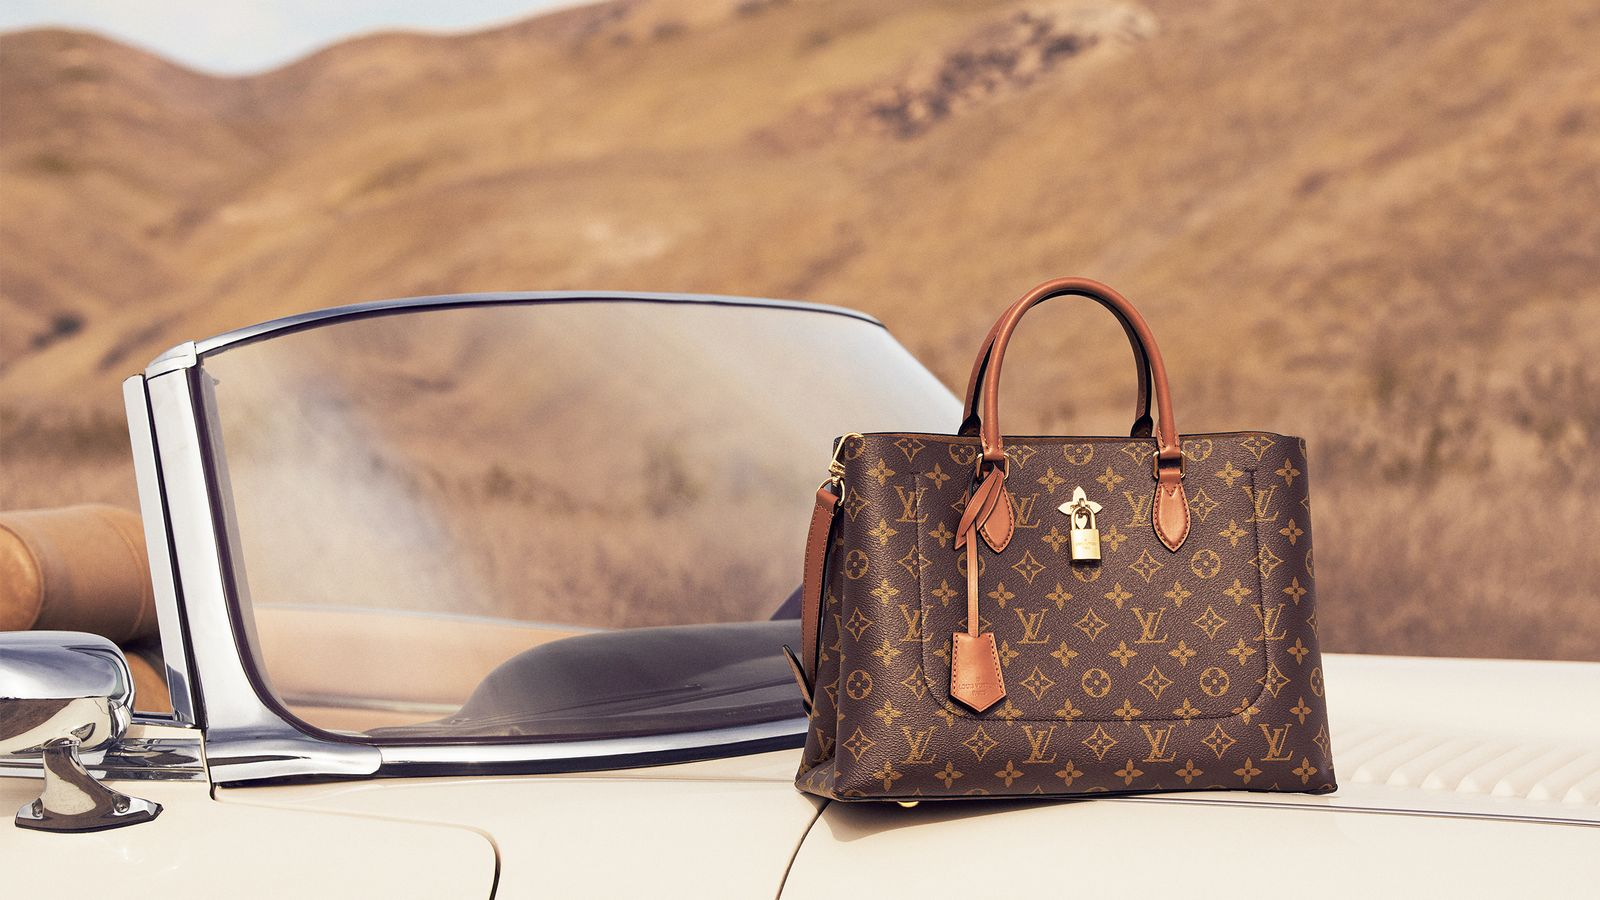 Louis Vuitton Spirit of Travel Fashionela